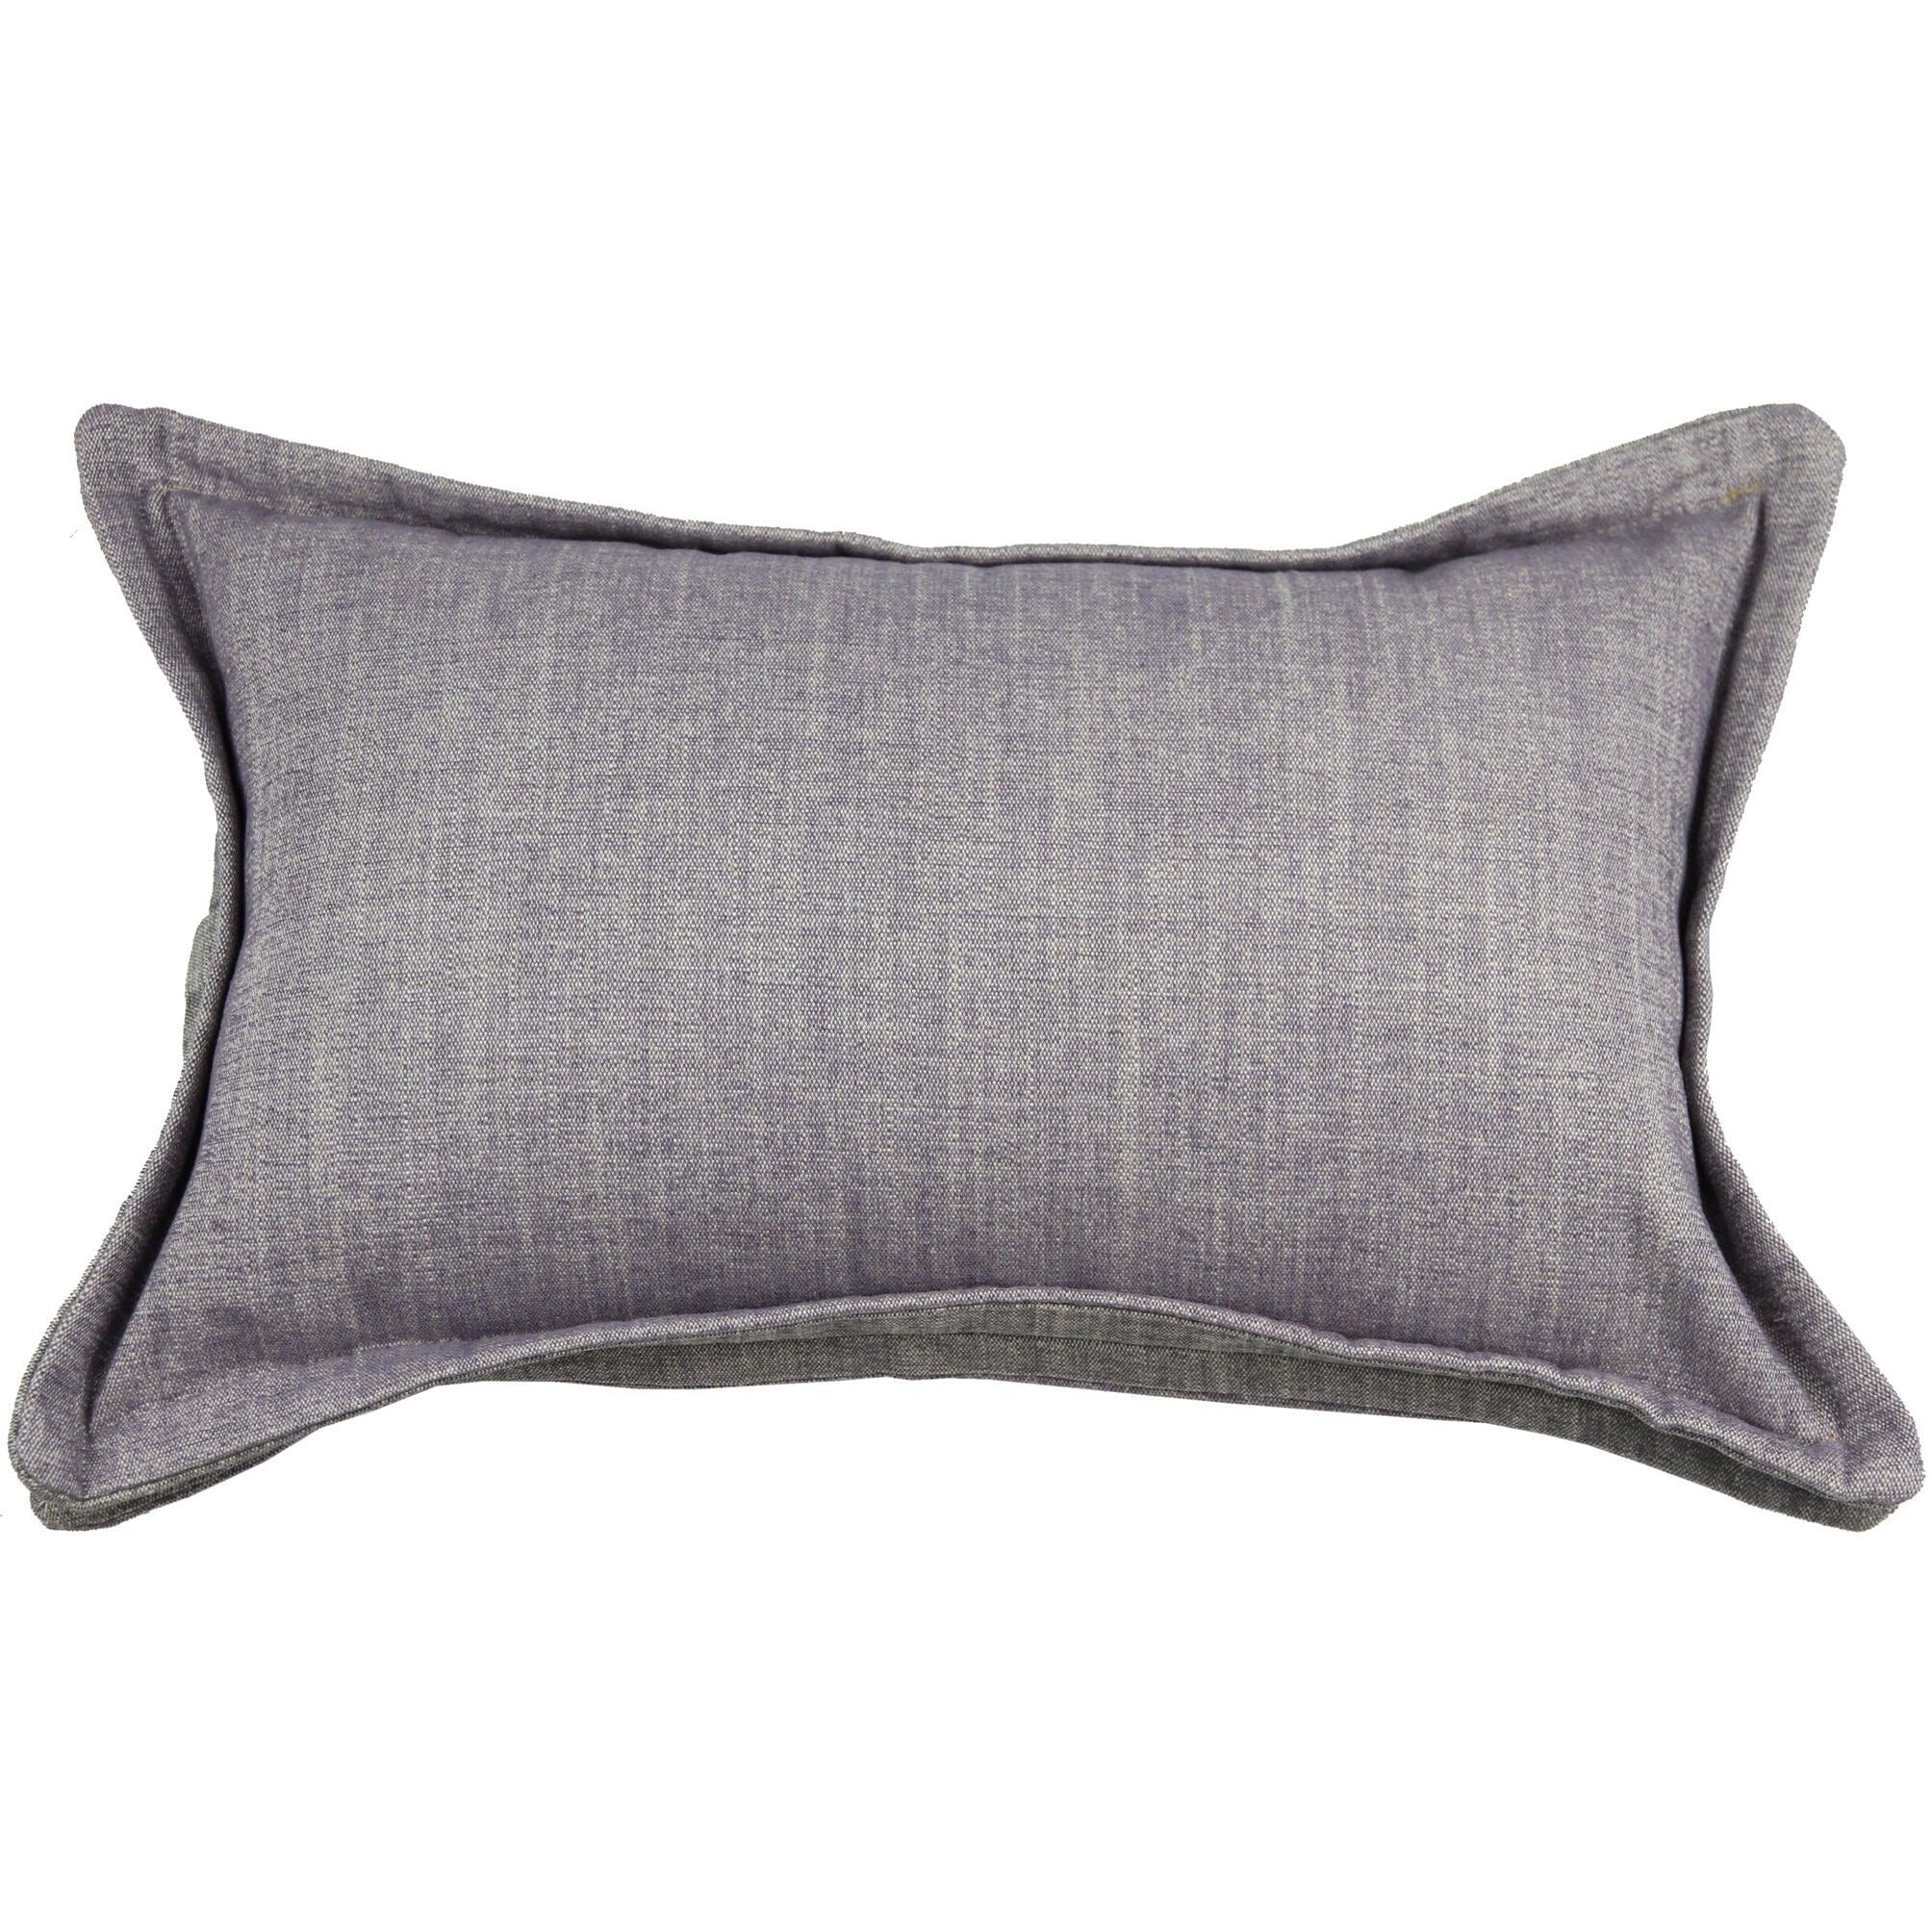 McAlister Textiles Rhumba Accent Lilac Purple + Grey Pillow Pillow Cover Only 50cm x 30cm